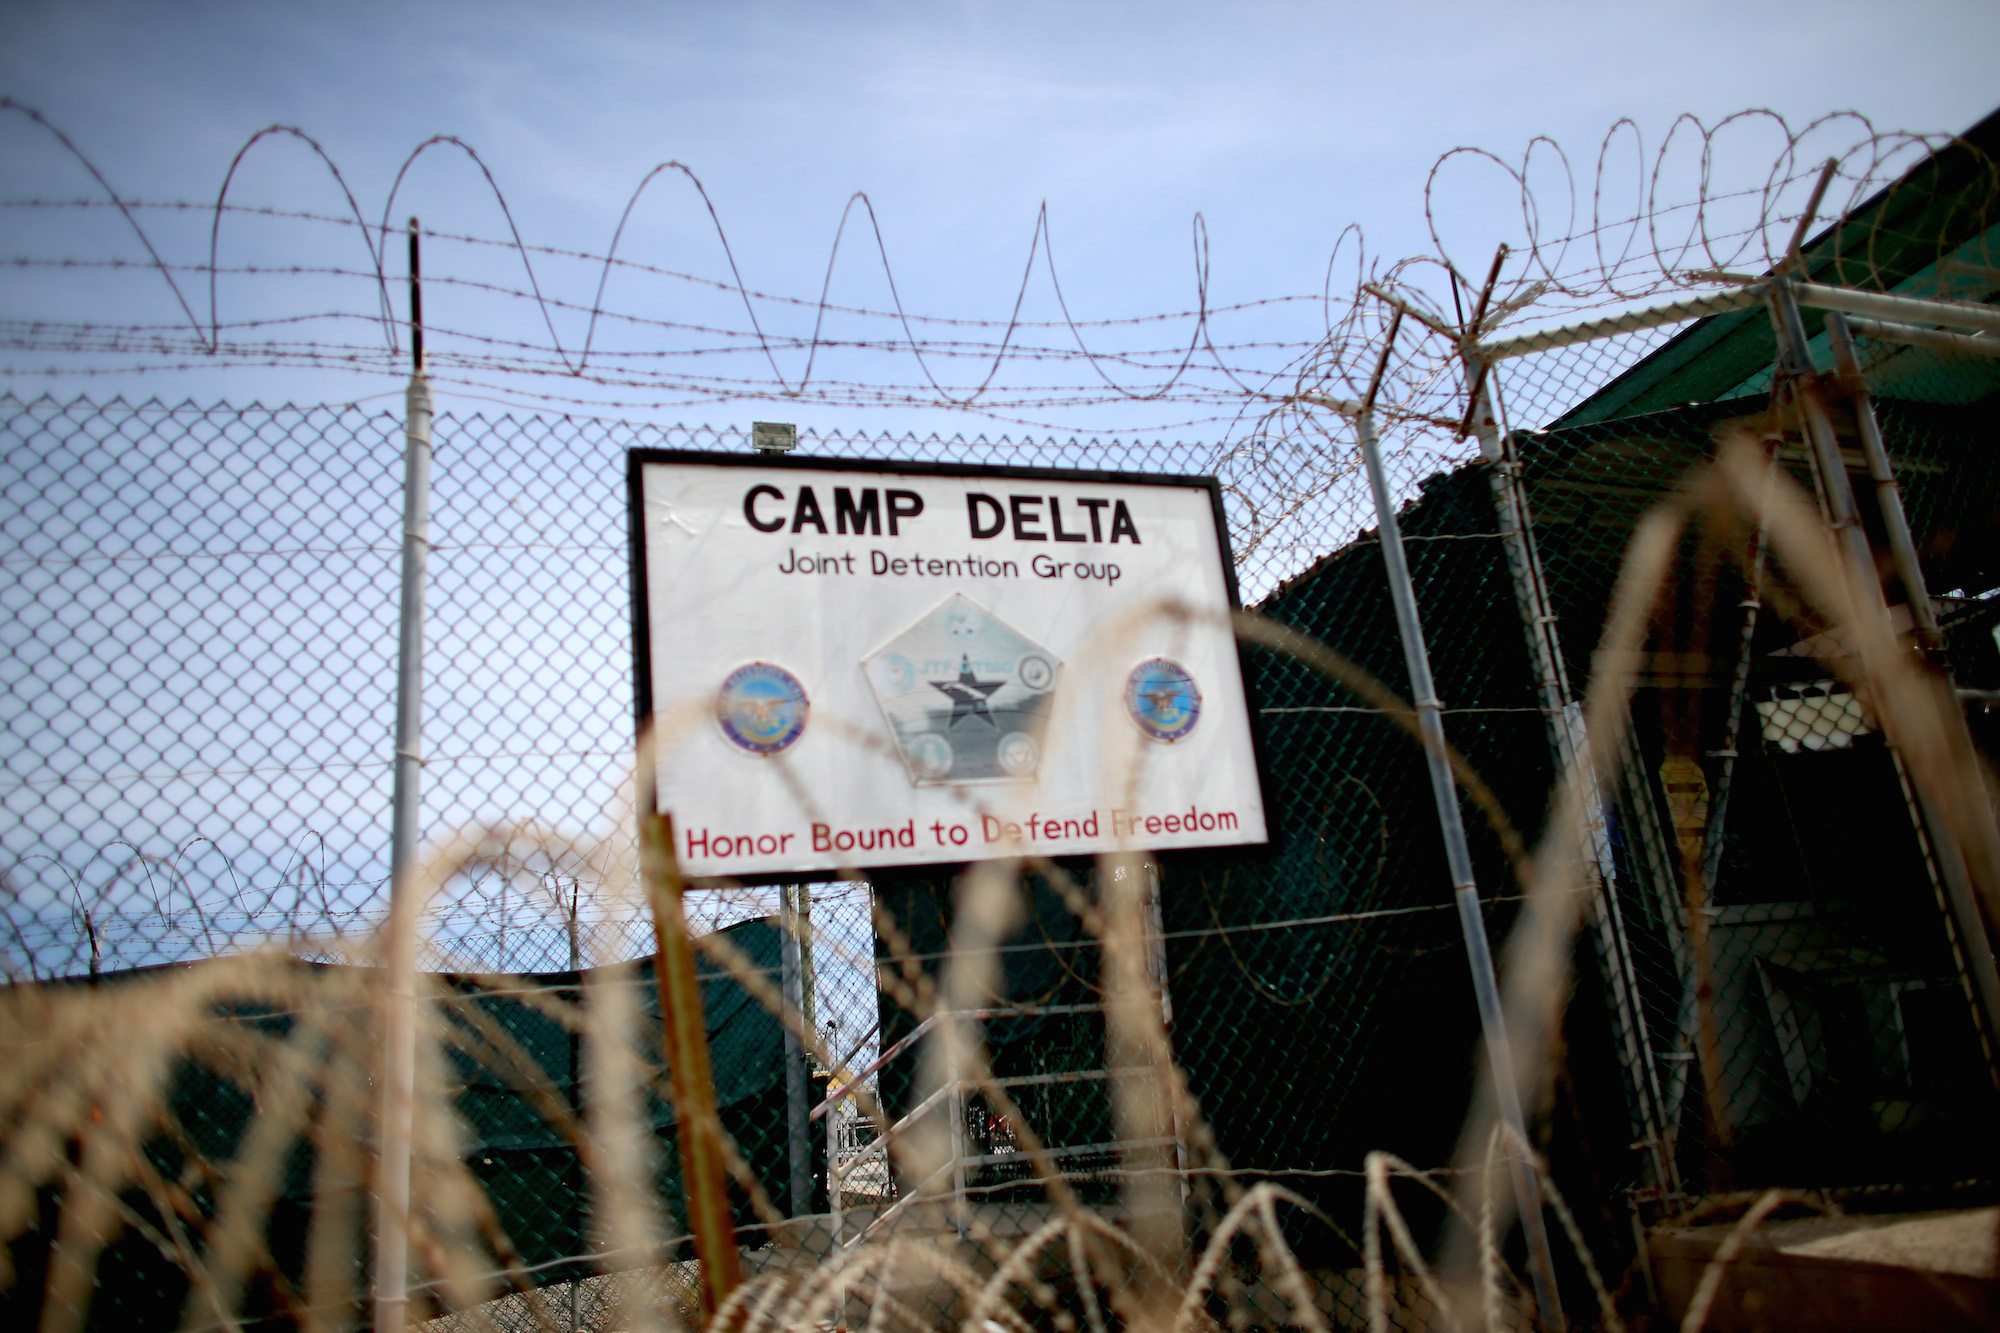 A sign stands in front of Camp Delta which is part of the U.S. military prison for 'enemy combatants' on June 25, 2013 in Guantanamo Bay, Cuba. Joe Raedle/Getty Images